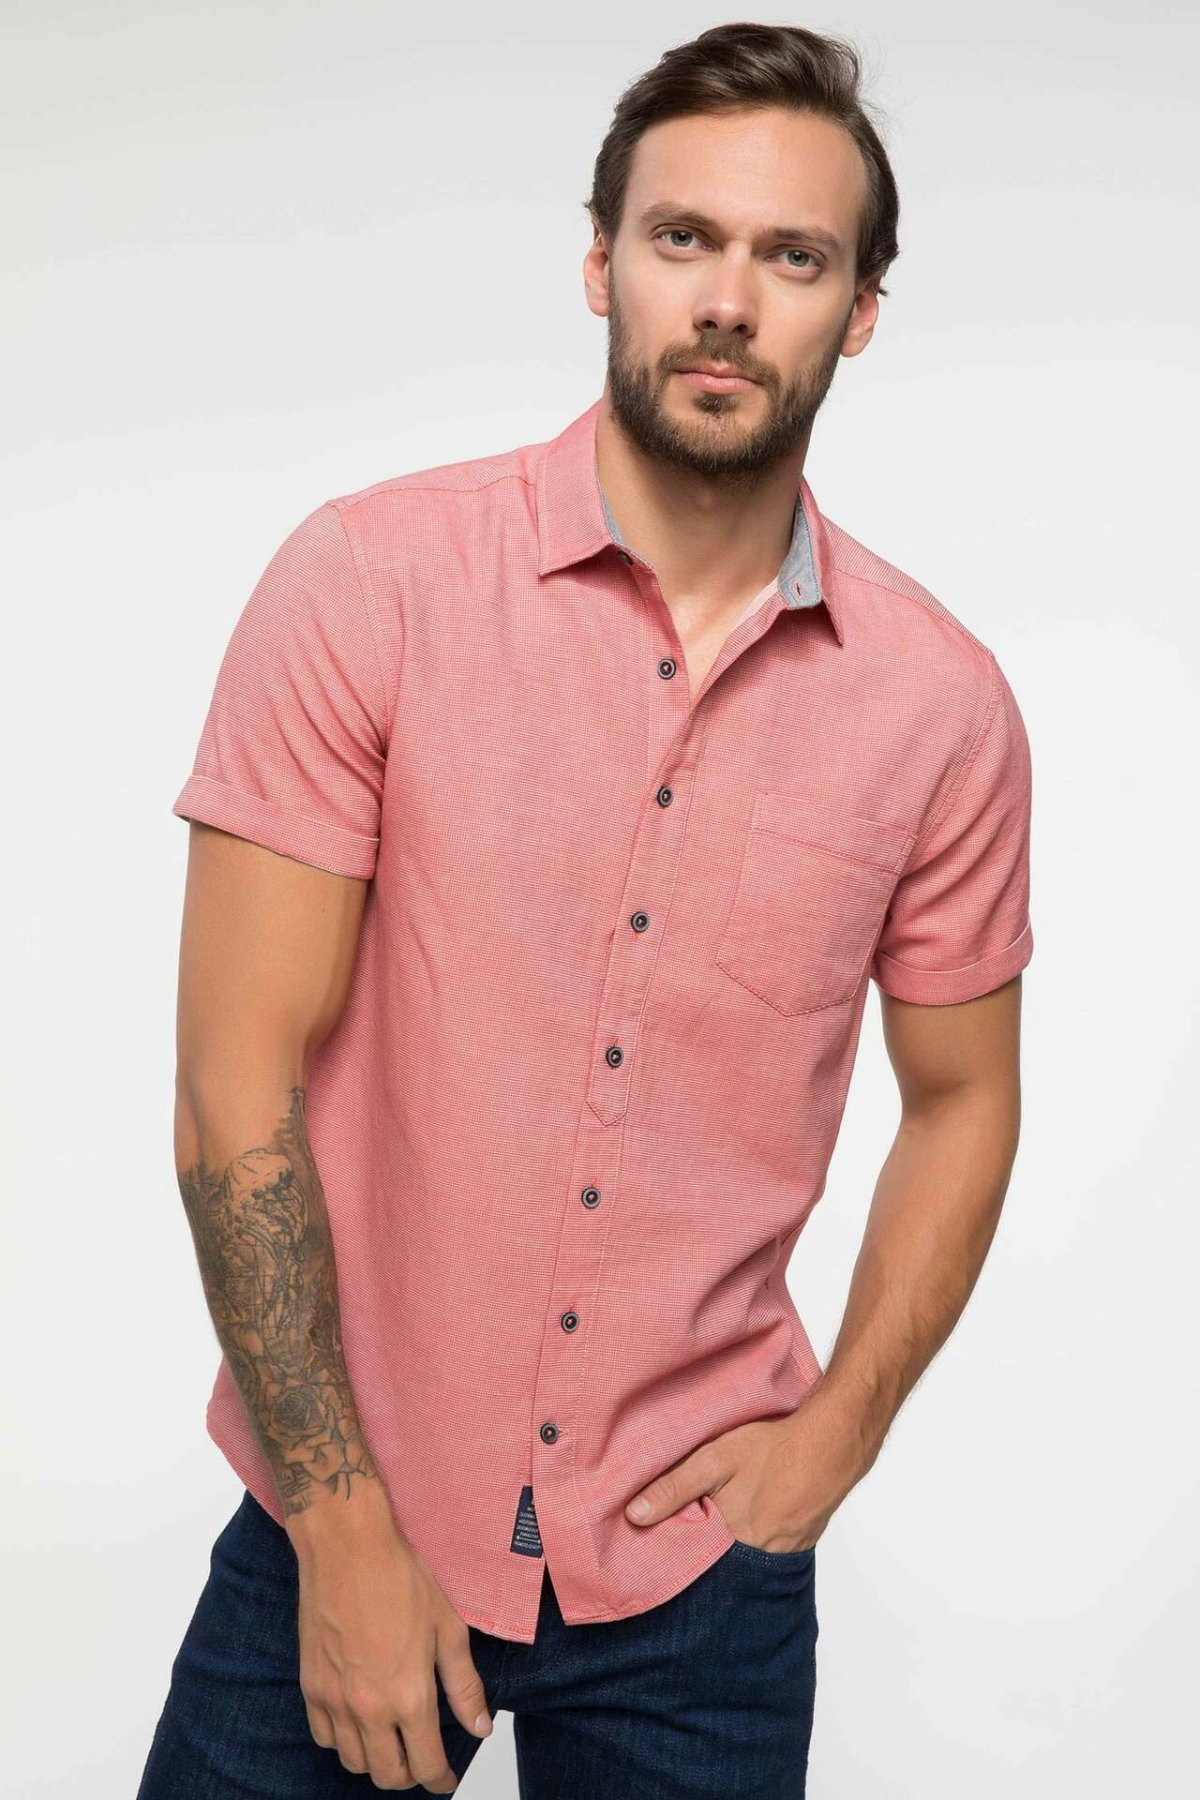 DeFacto Fashion Man Short Sleeve Shirt For Men's Casual Solid Comfort Shirts Leisure Simple Joker Tops Male Summer-I9635AZ18SM